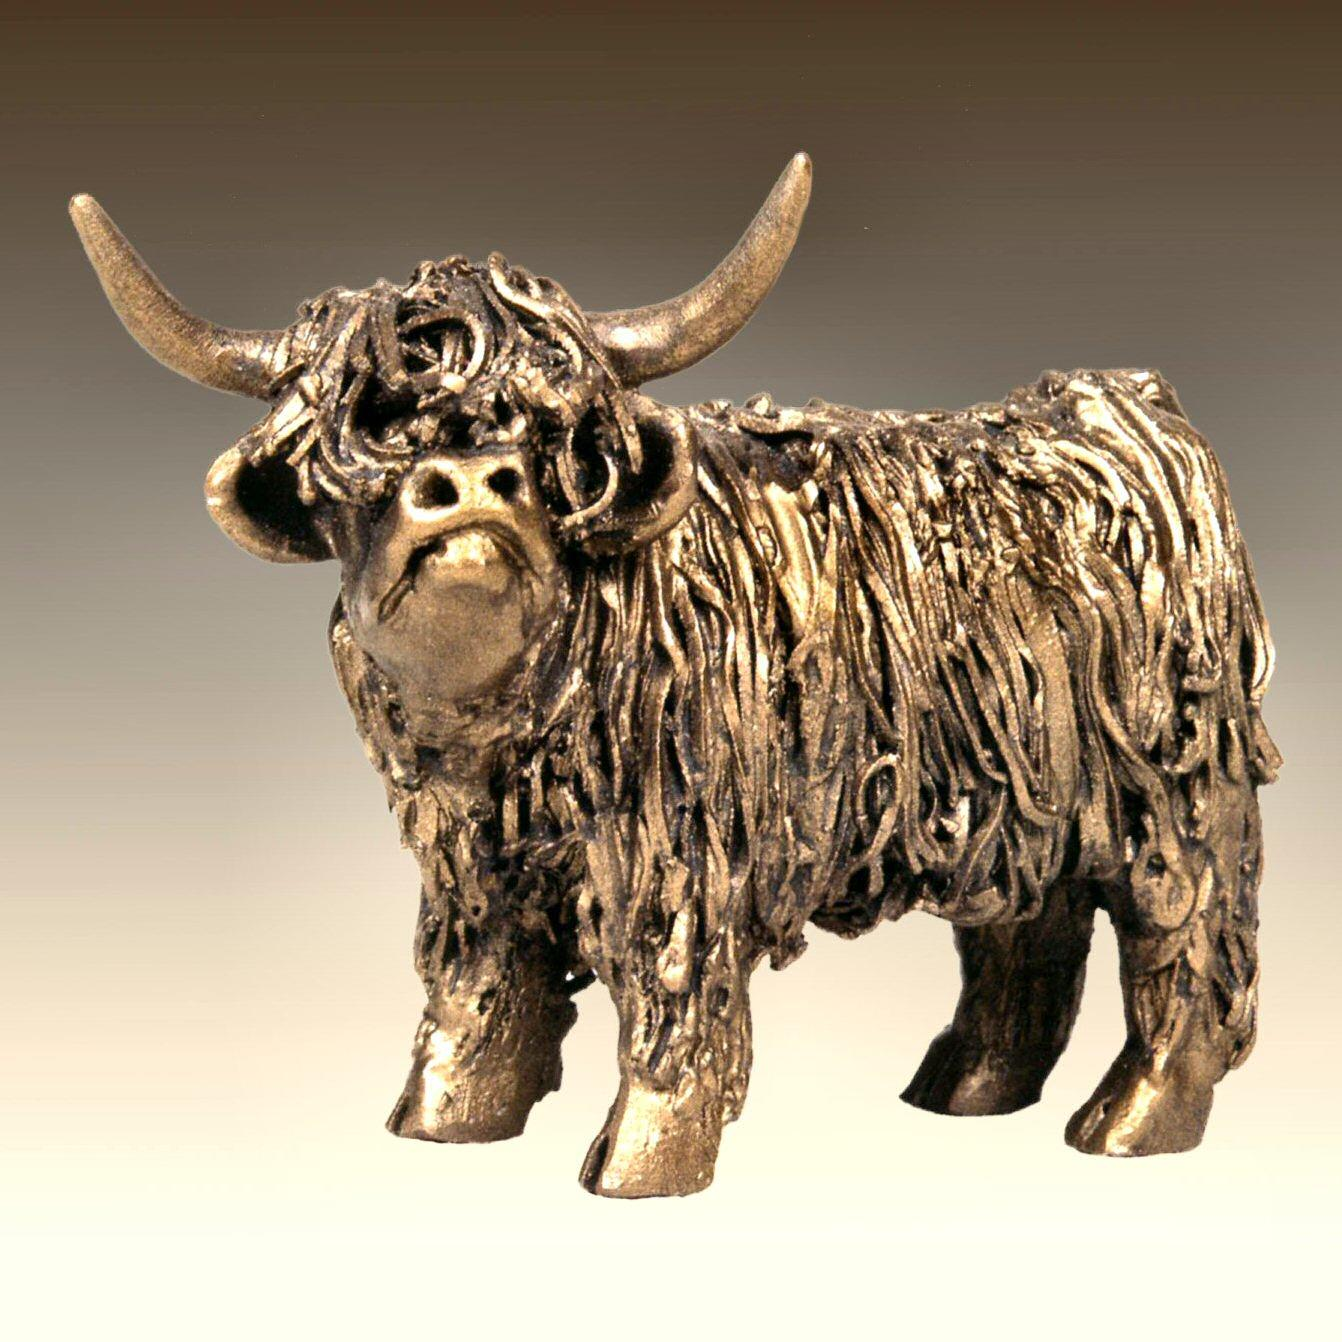 Highland Cow Standing - junior (VB076) by Veronica Ballan